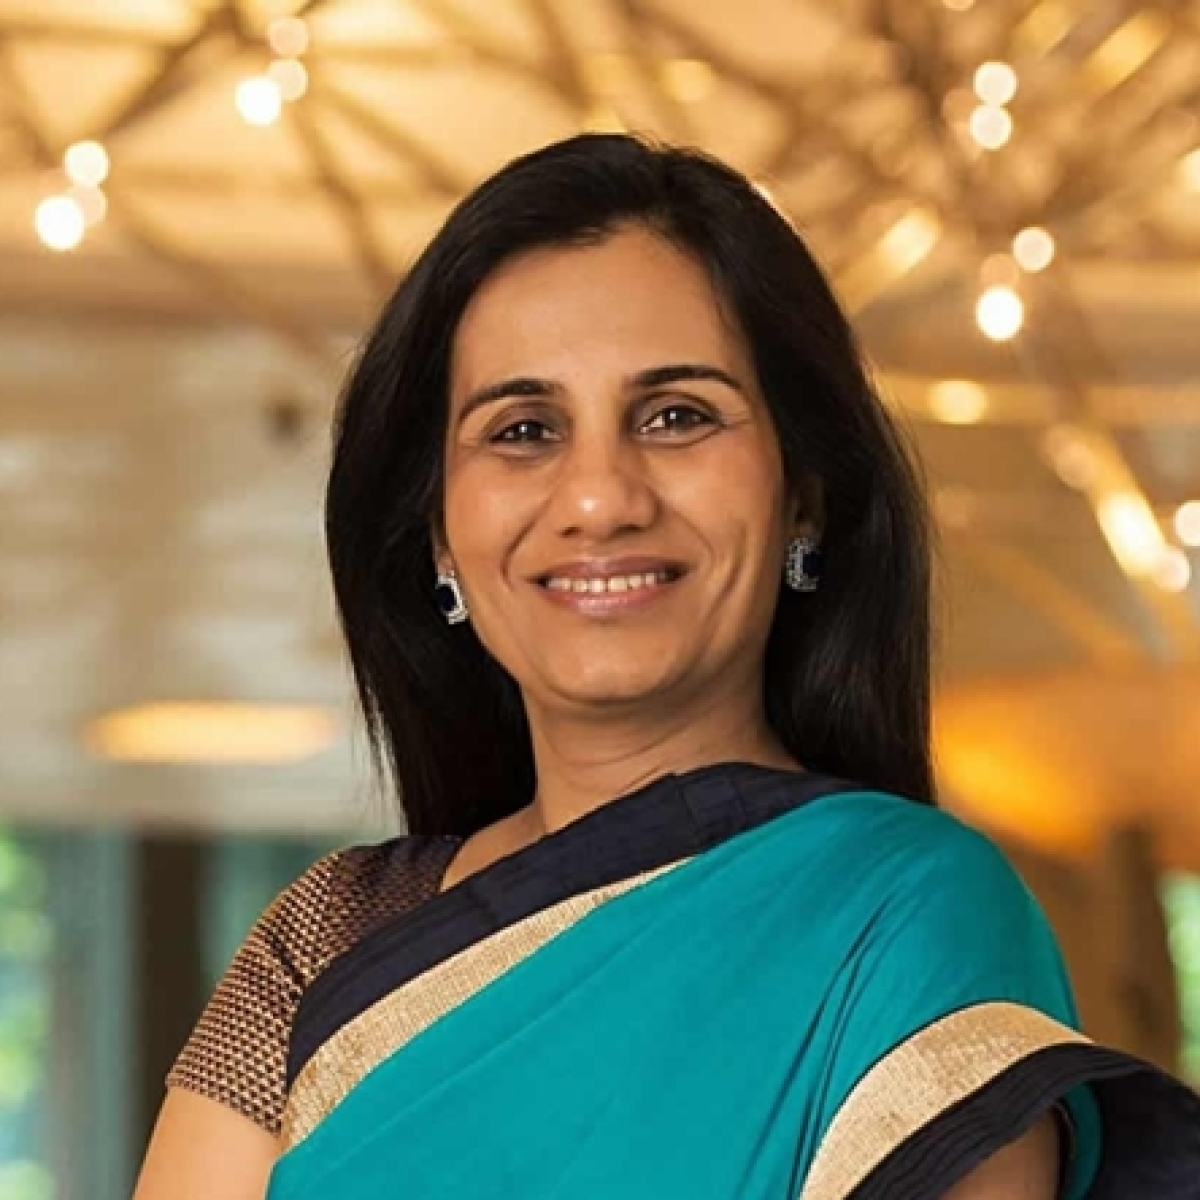 ICICI-Videocon case: ED attaches Rs 78 crore worth assets of ex-ICICI Chairman Chanda Kochhar